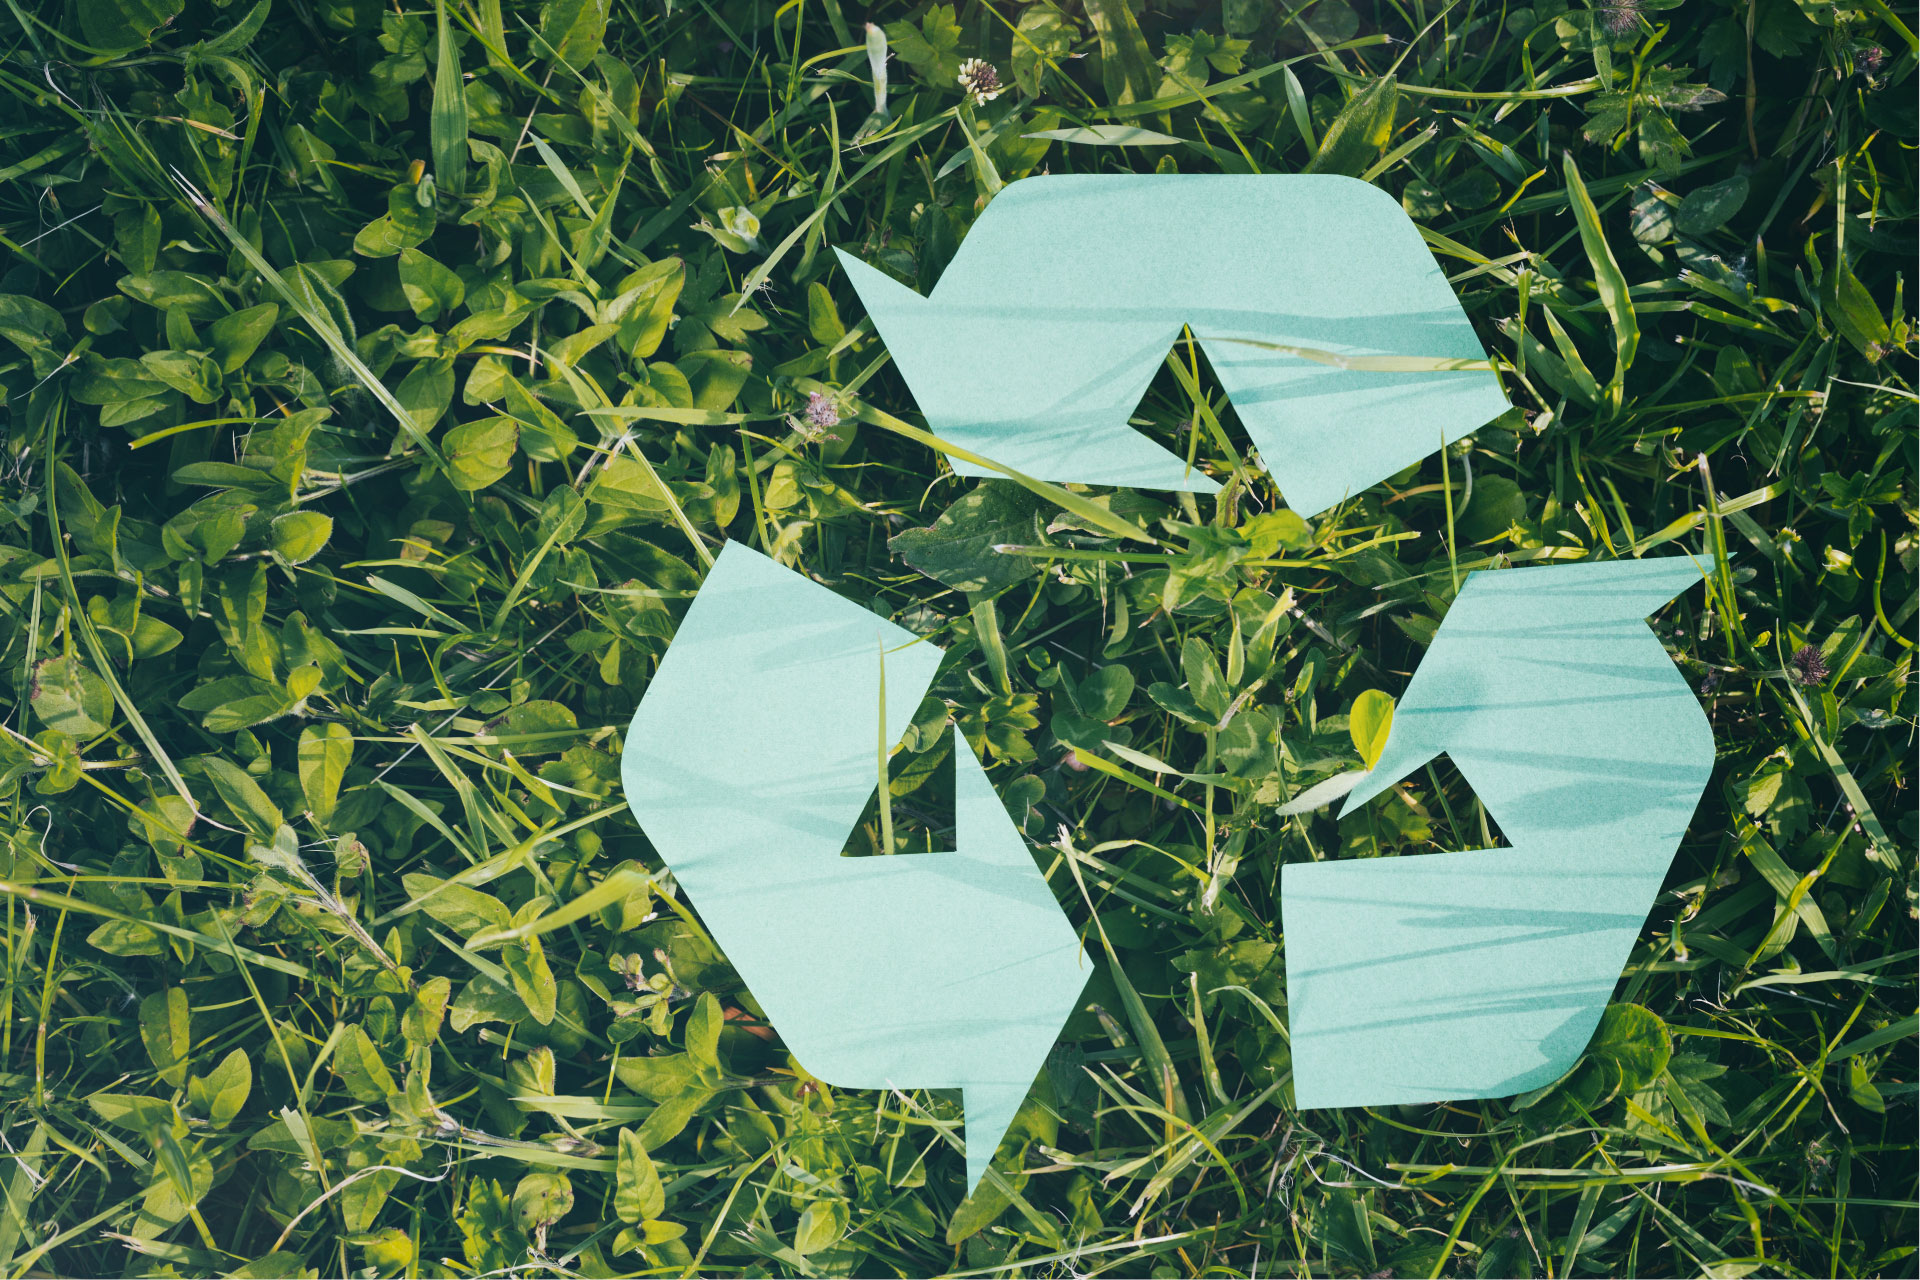 Reduce, rethink and recycle